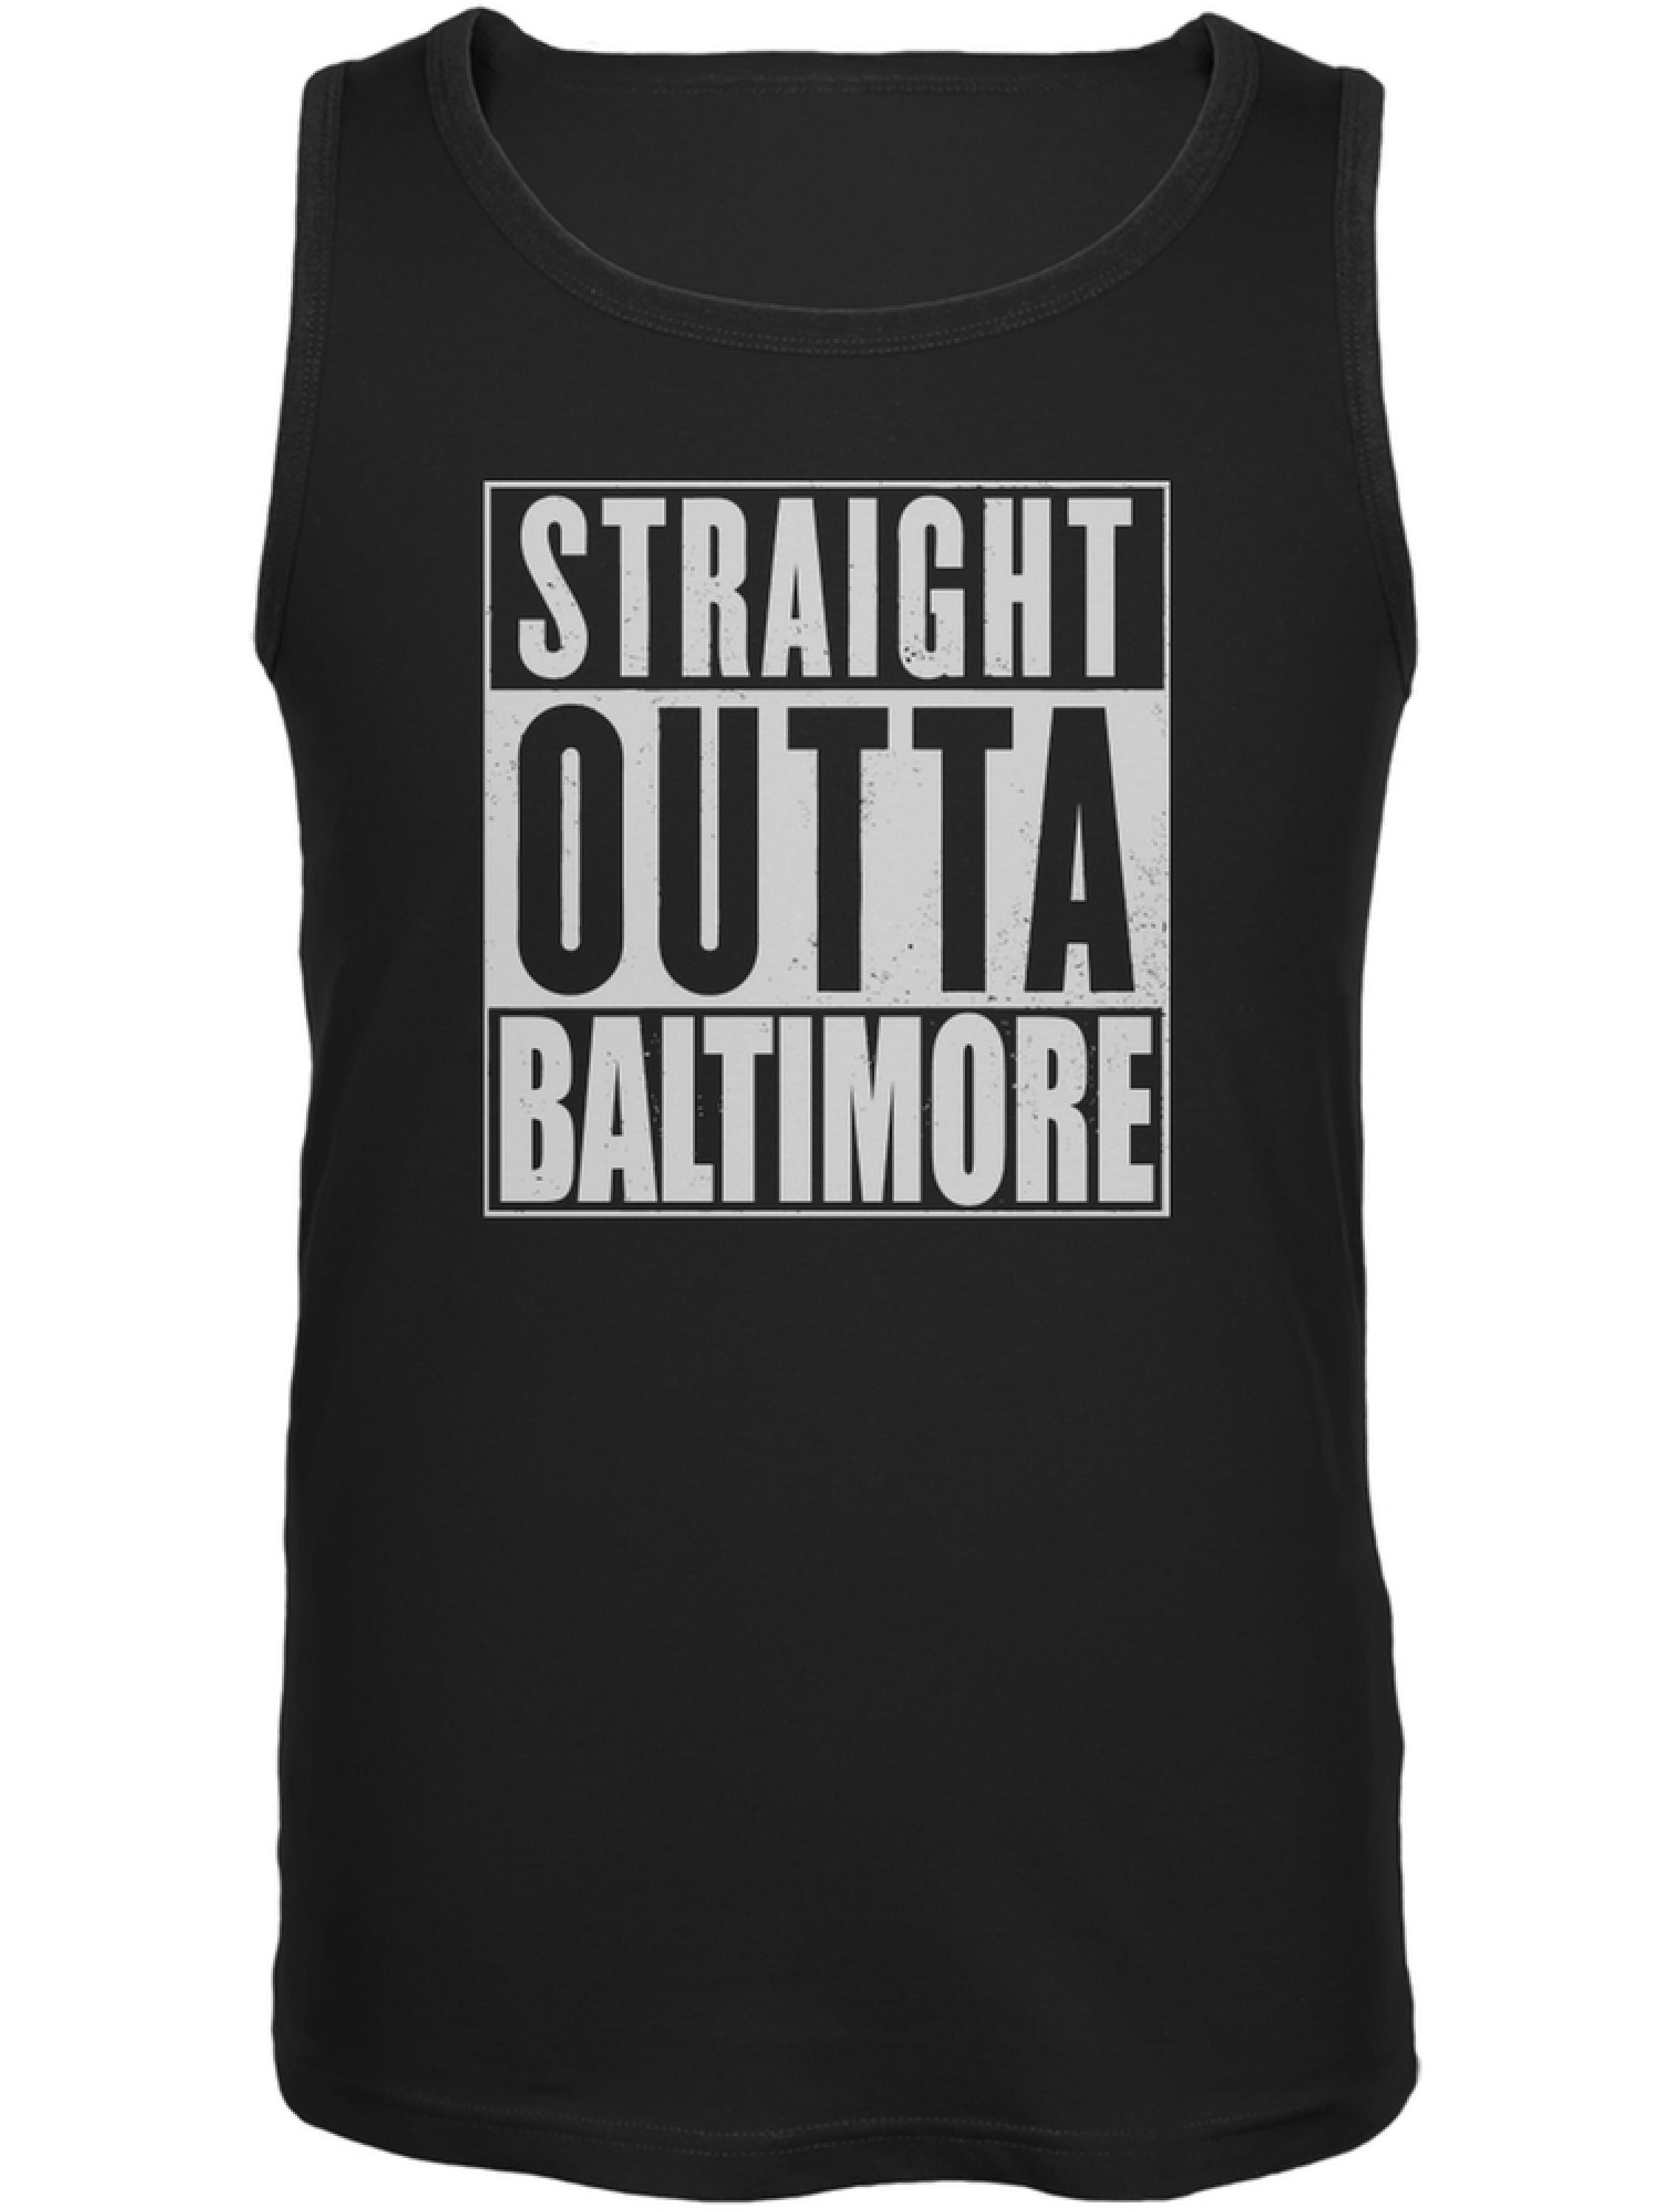 Old Glory Straight Outta Baltimore Black Adult Tank Top